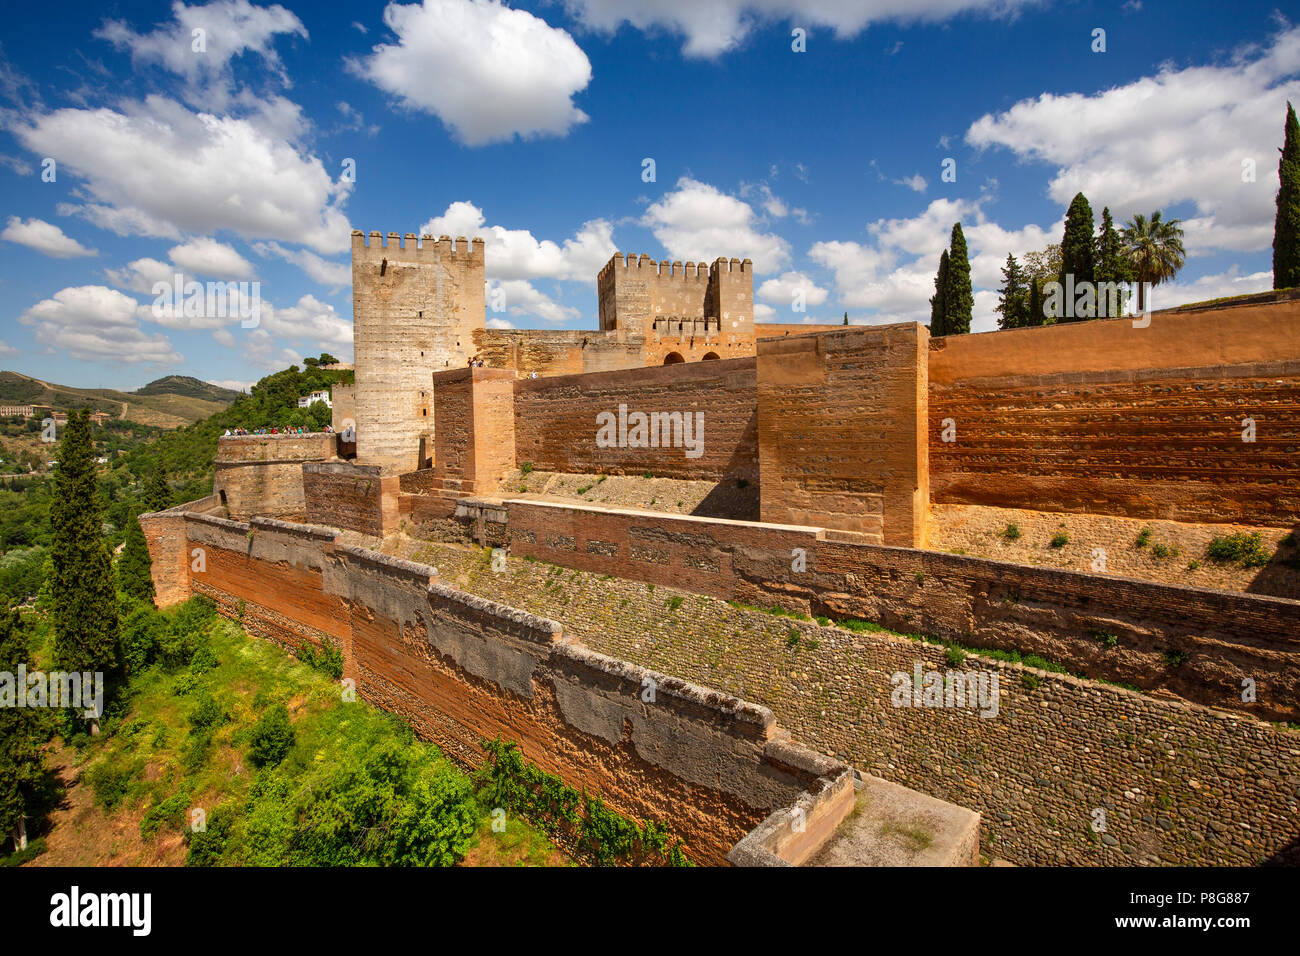 The Alcazaba. Alhambra, UNESCO World Heritage Site. Granada City. Andalusia, Southern Spain Europe Stock Photo